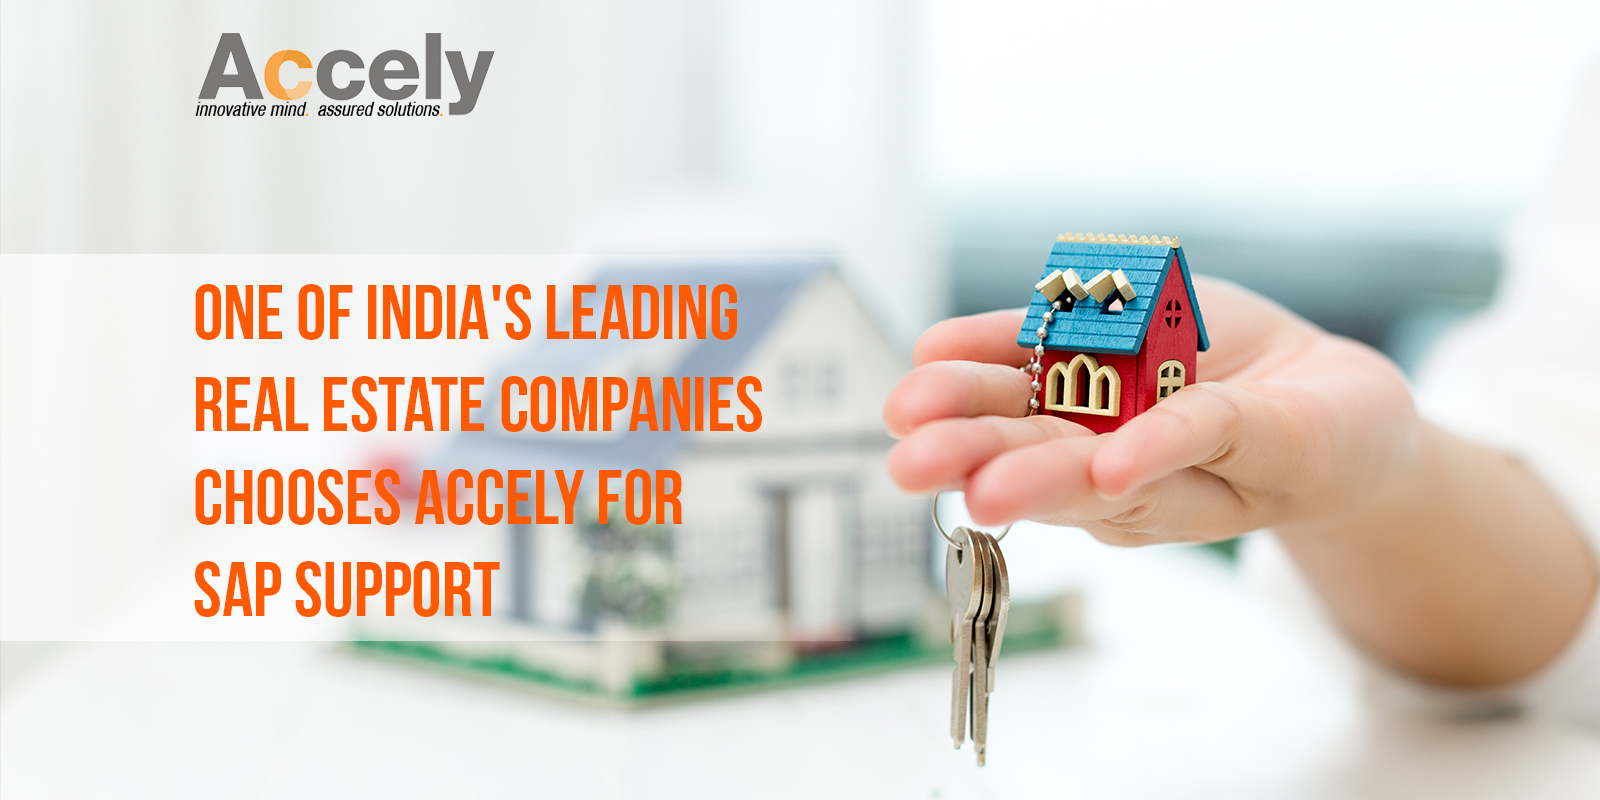 One of India's leading Real Estate Companies chooses Accely for SAP Support